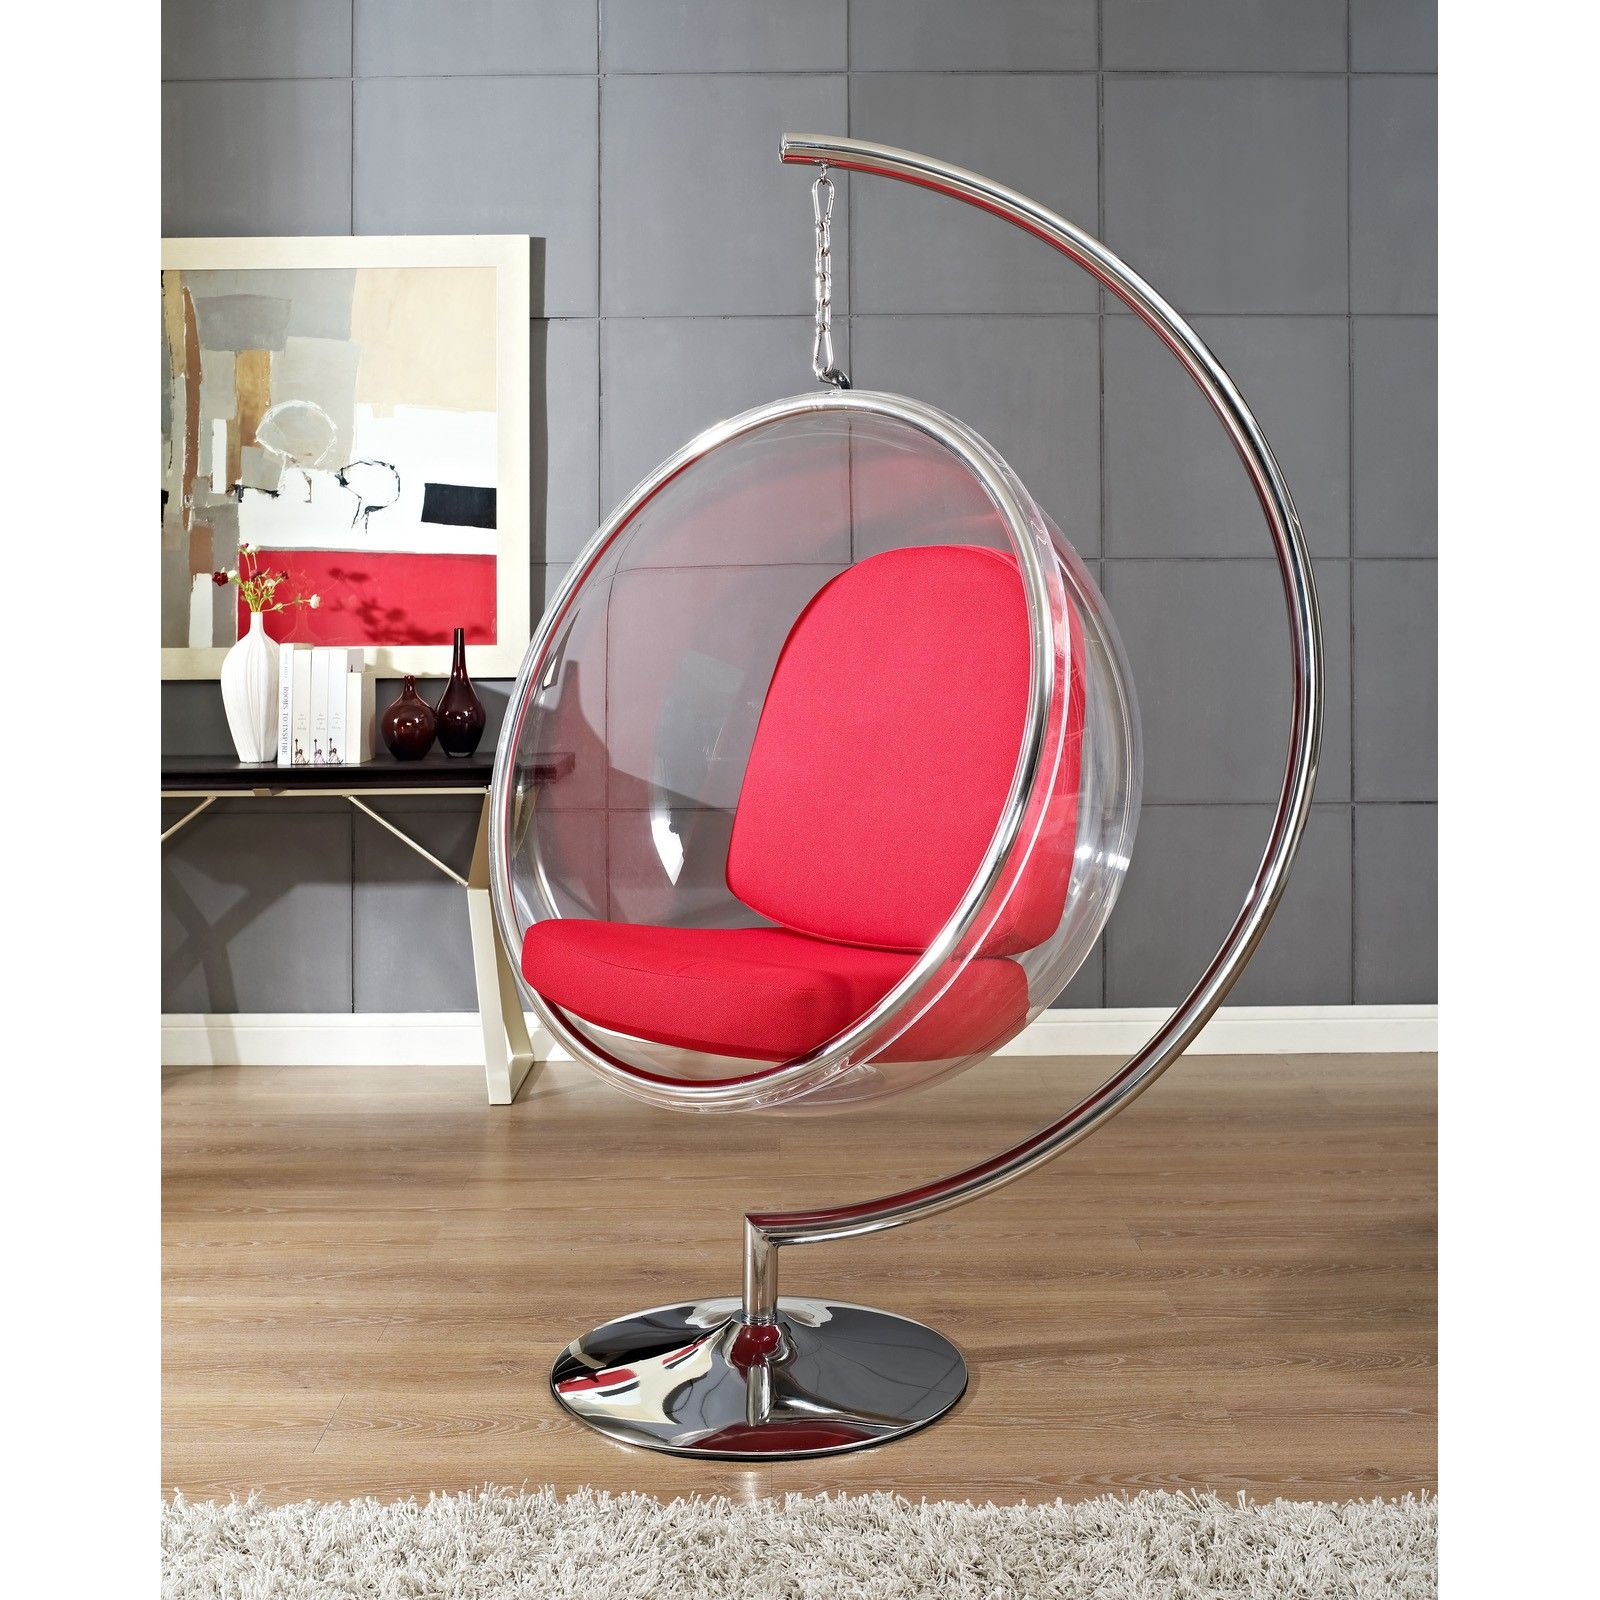 Hanging Chair On Wall Design Portfolio Baby Nursery Modern Bubble Chaise Chrome